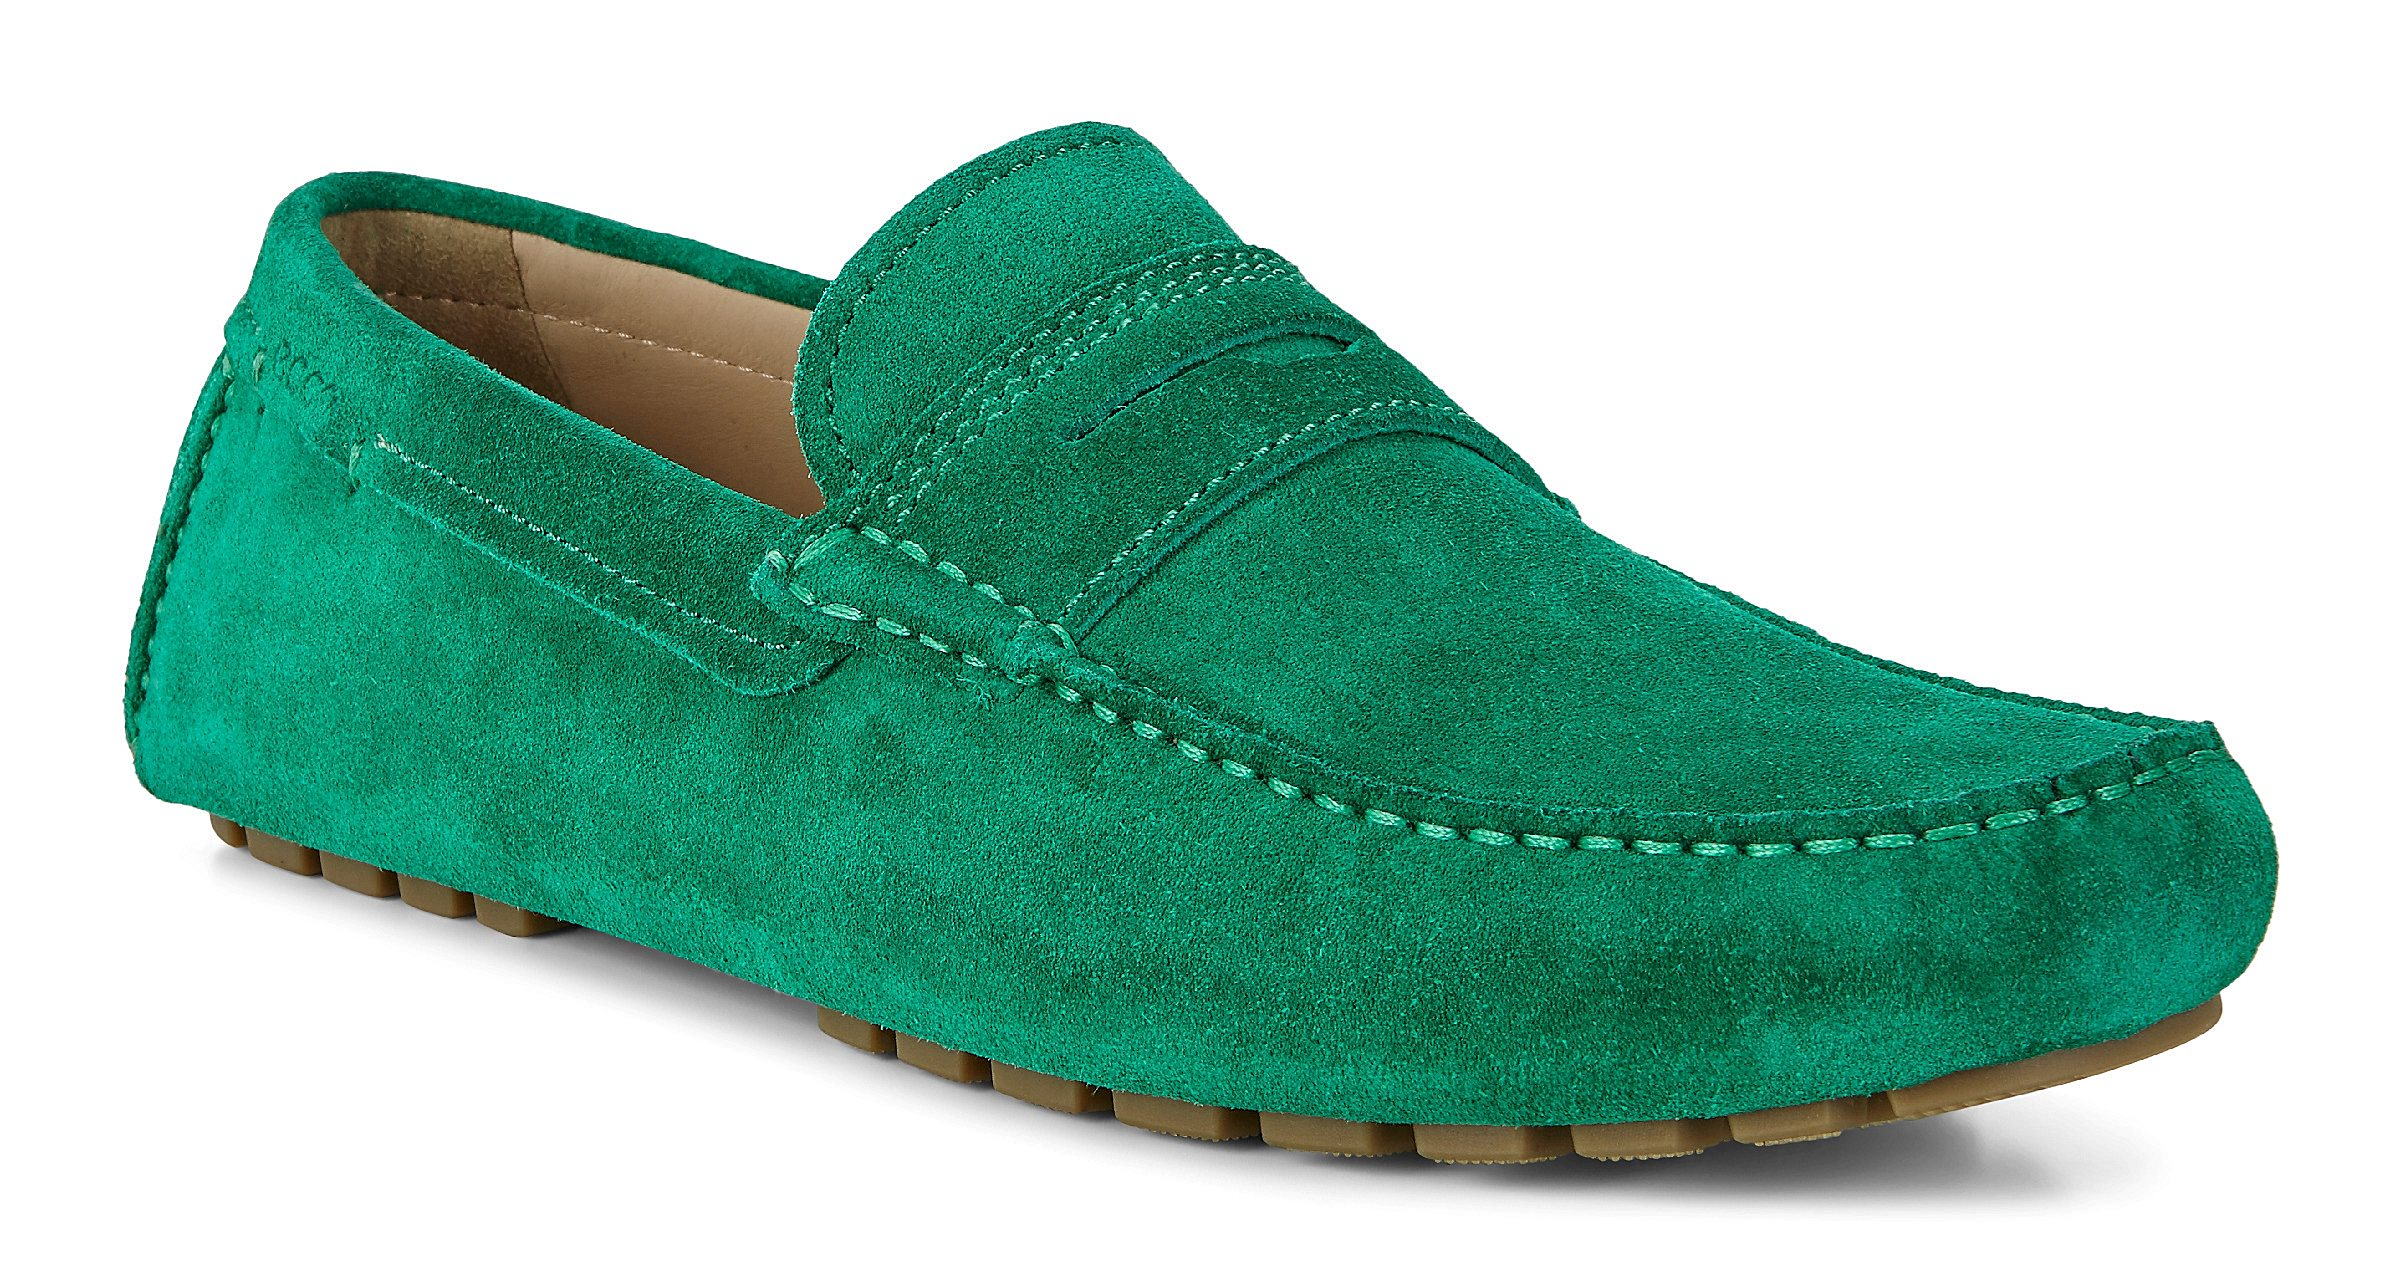 Men's Moccasins | Buy from the Official ECCO® Online Store